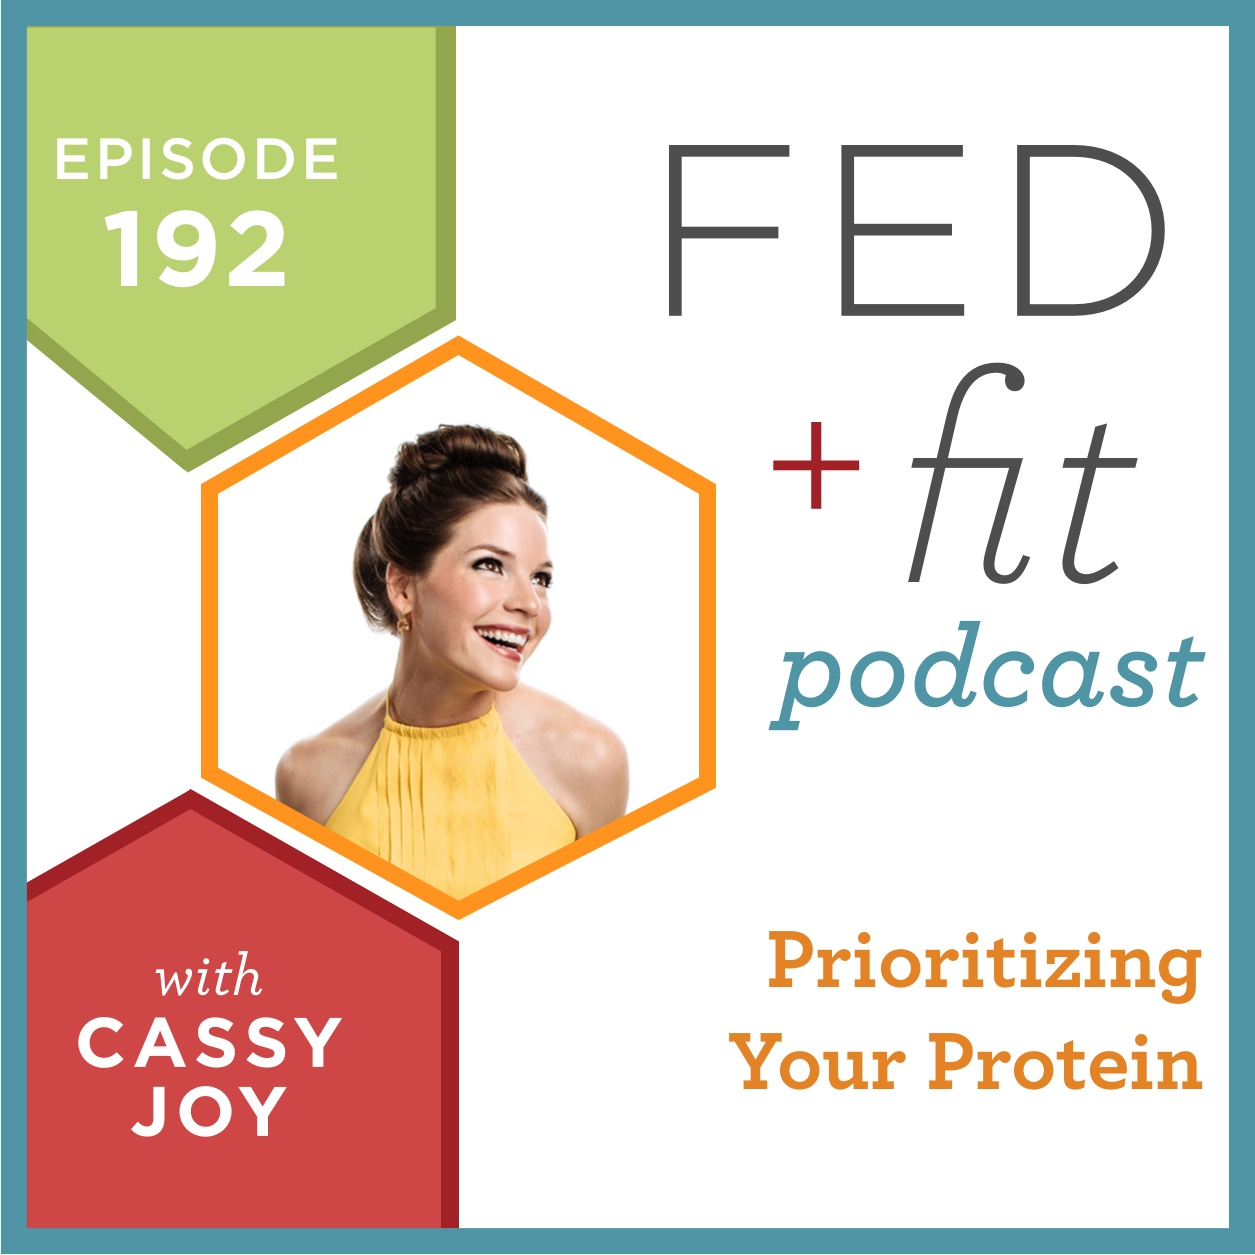 prioritizing your protein